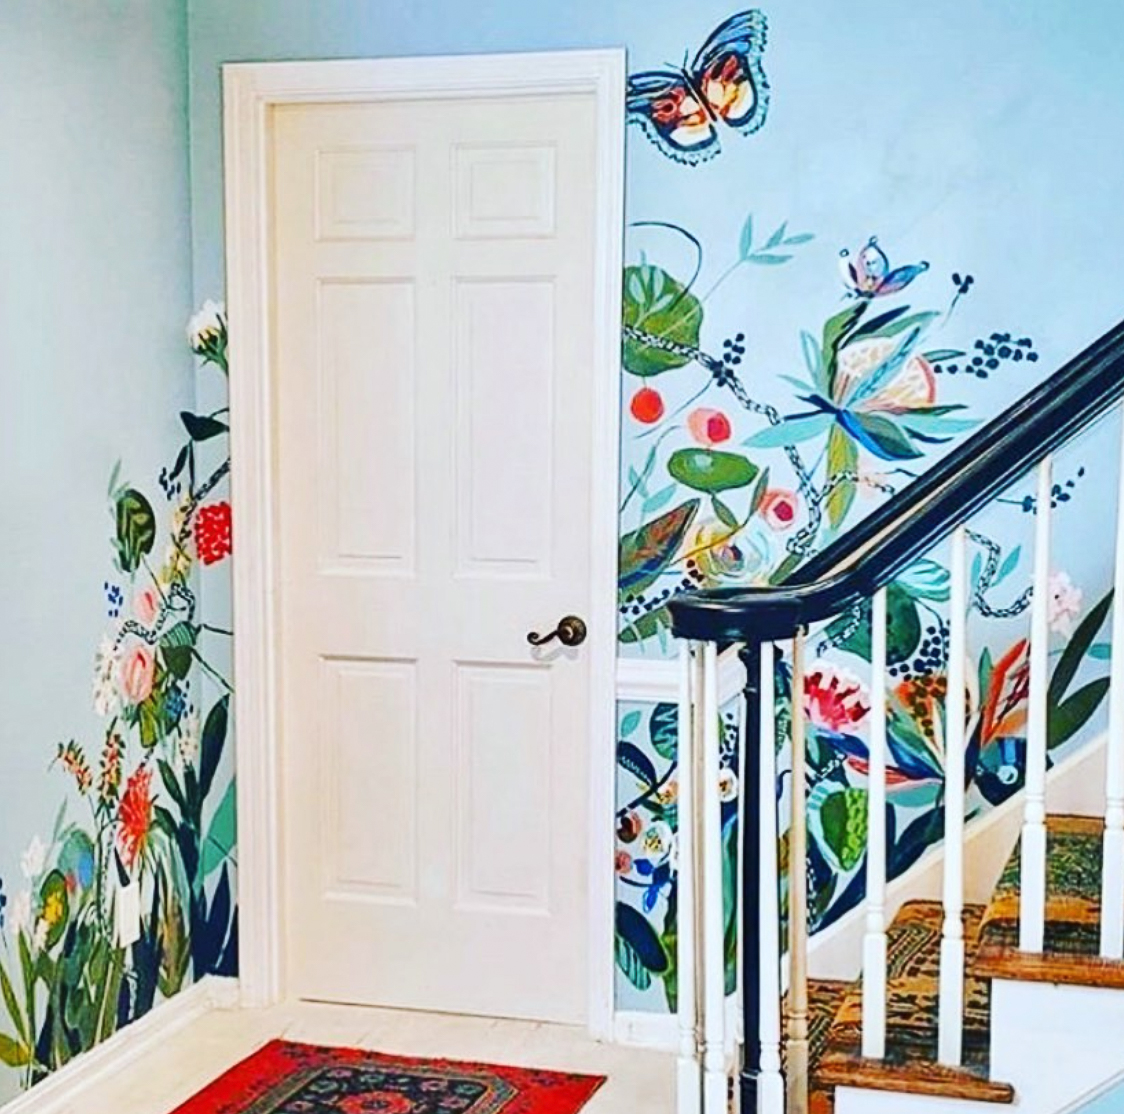 Hand painted mural on the staircase